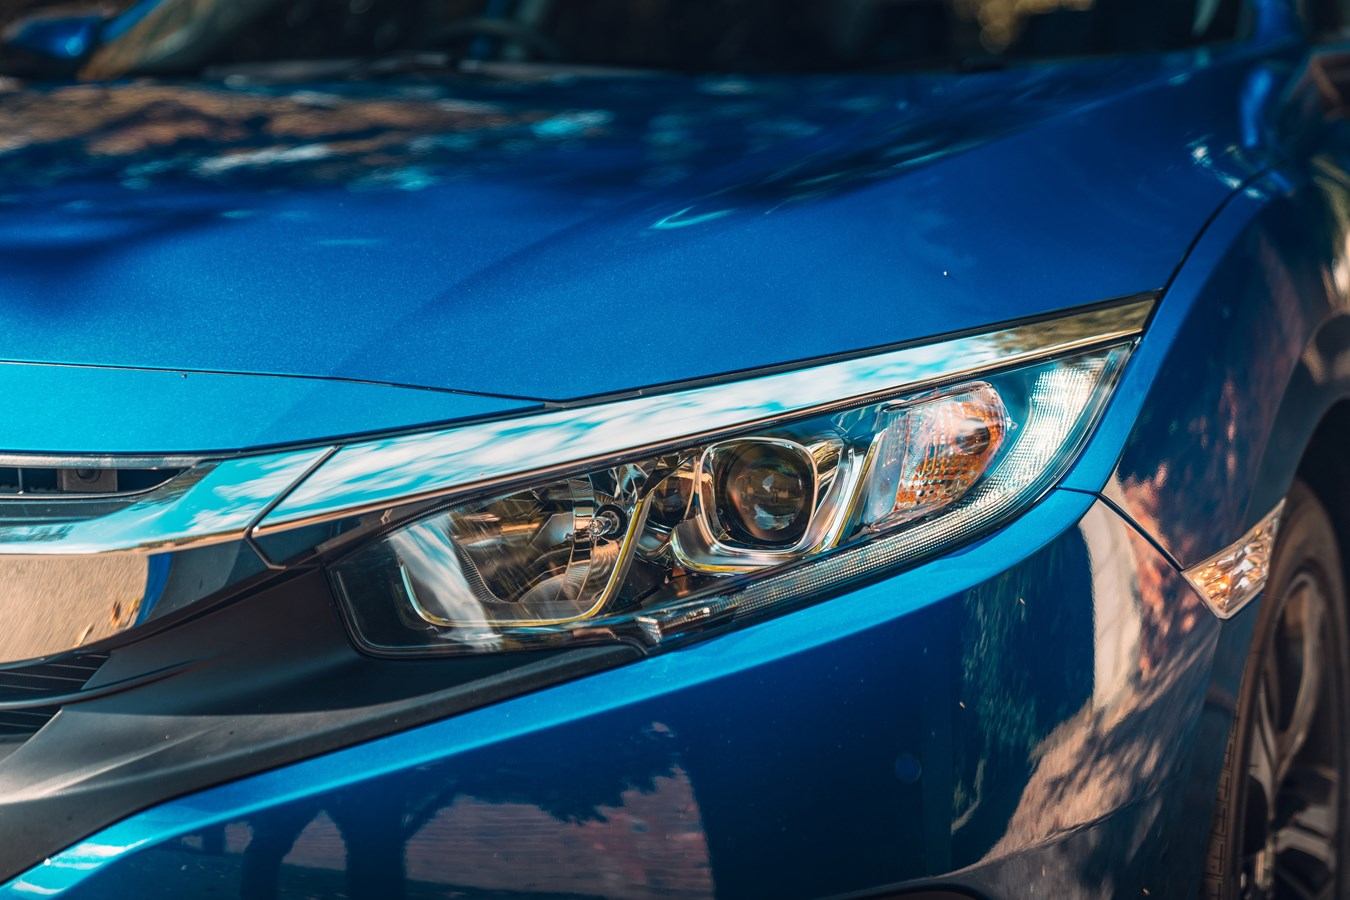 Sleek headlights give the front of the car plenty of edge